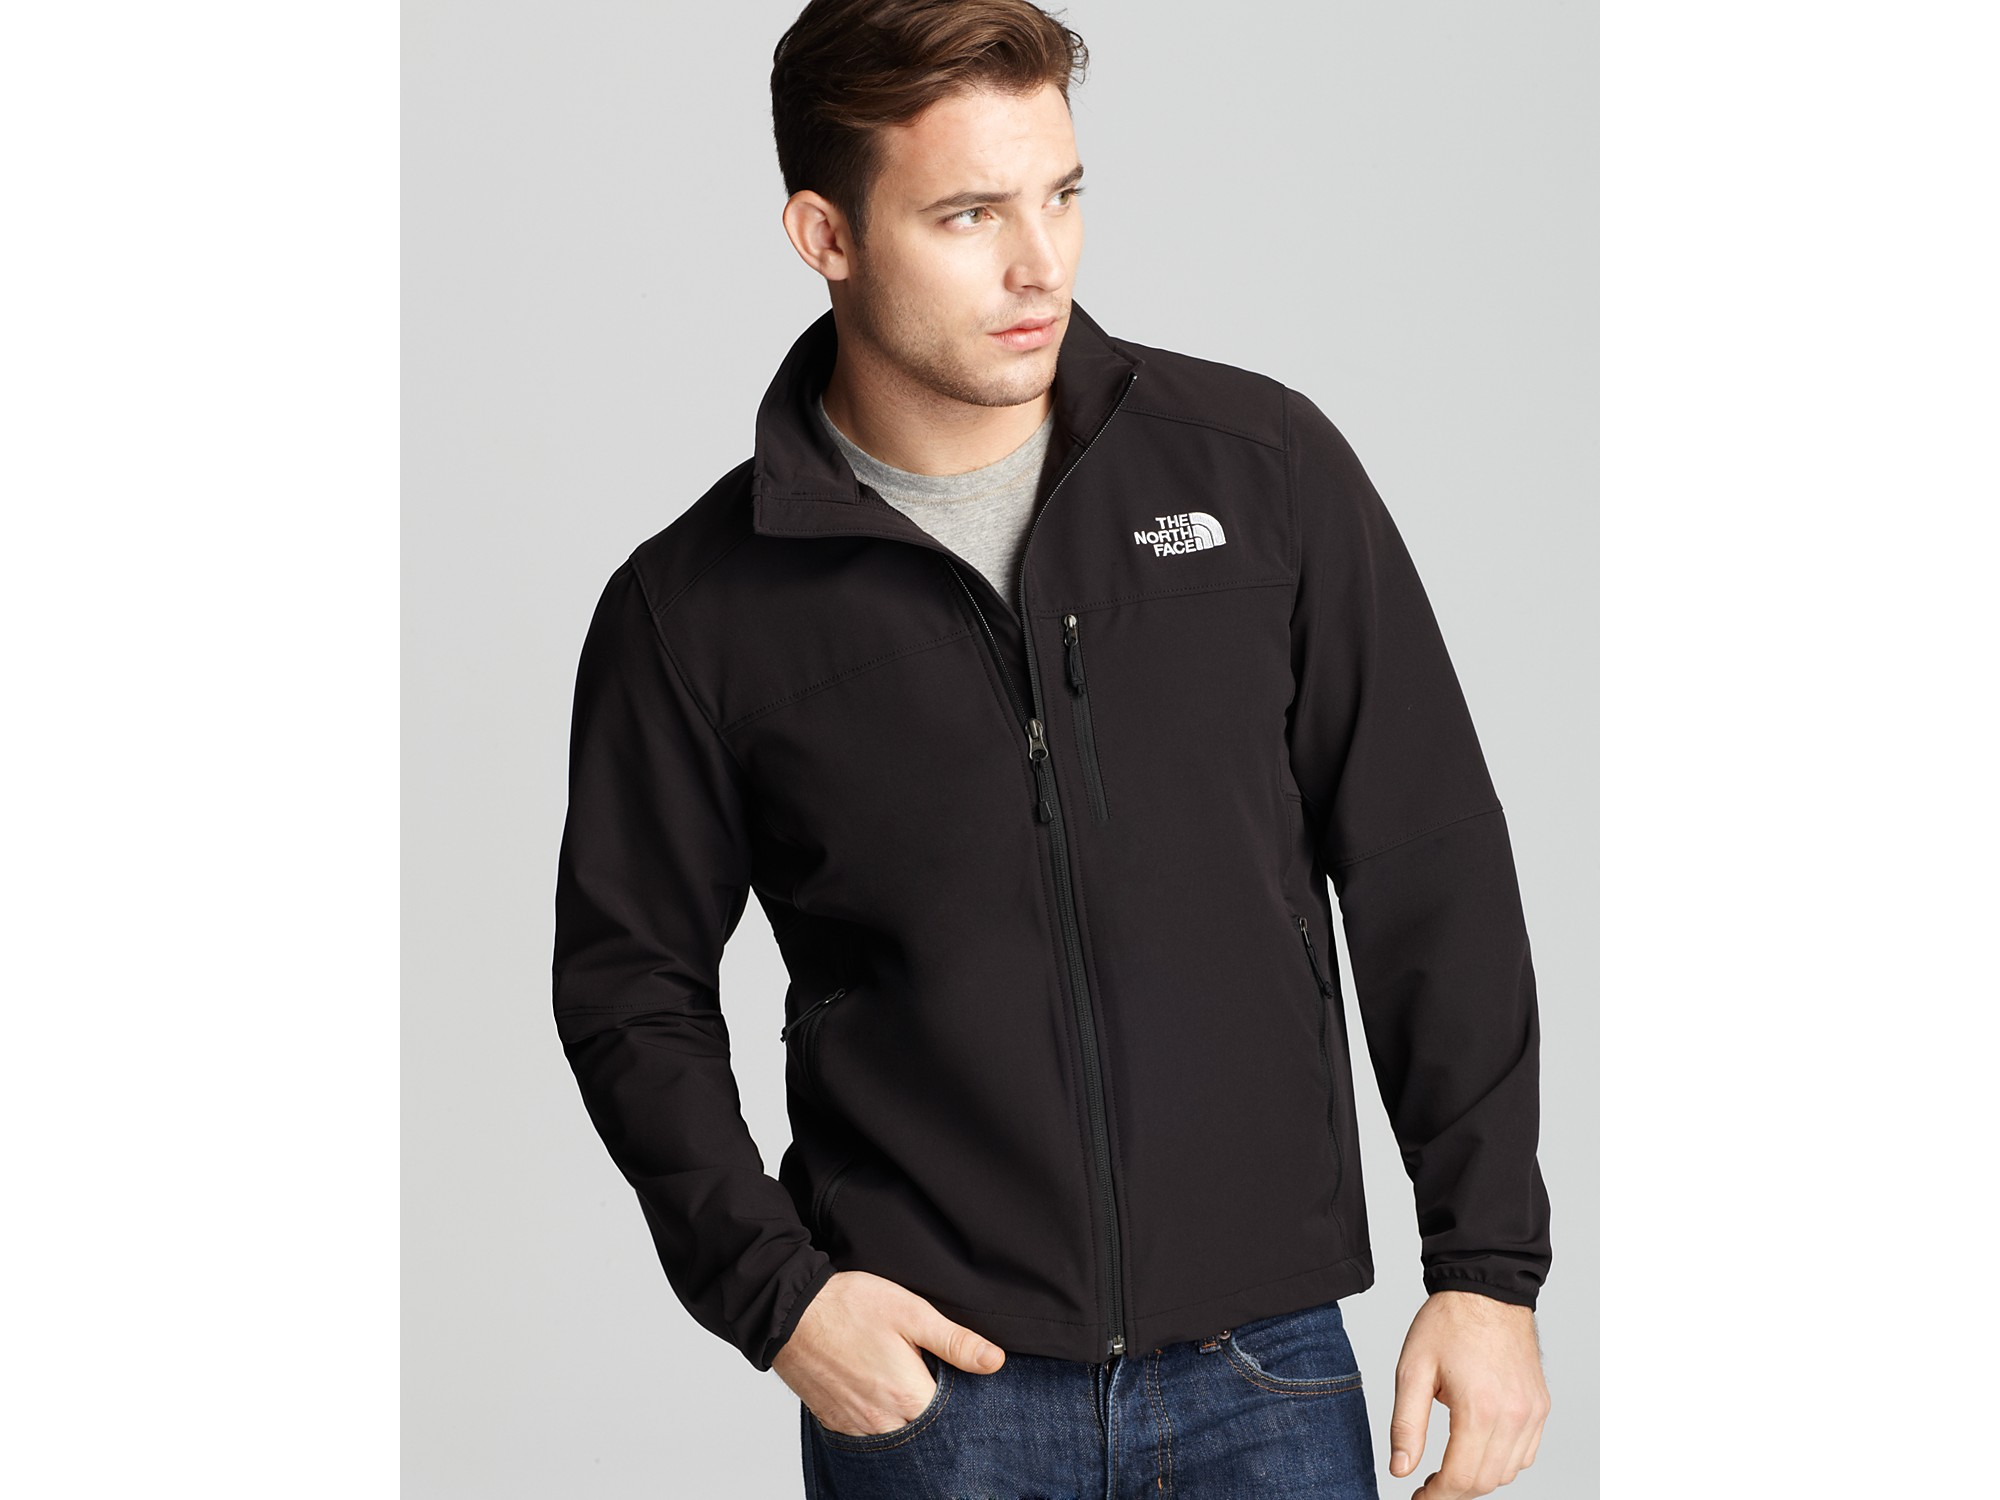 250b933703ec2 The North Face Nimble Jacket in Black for Men - Lyst